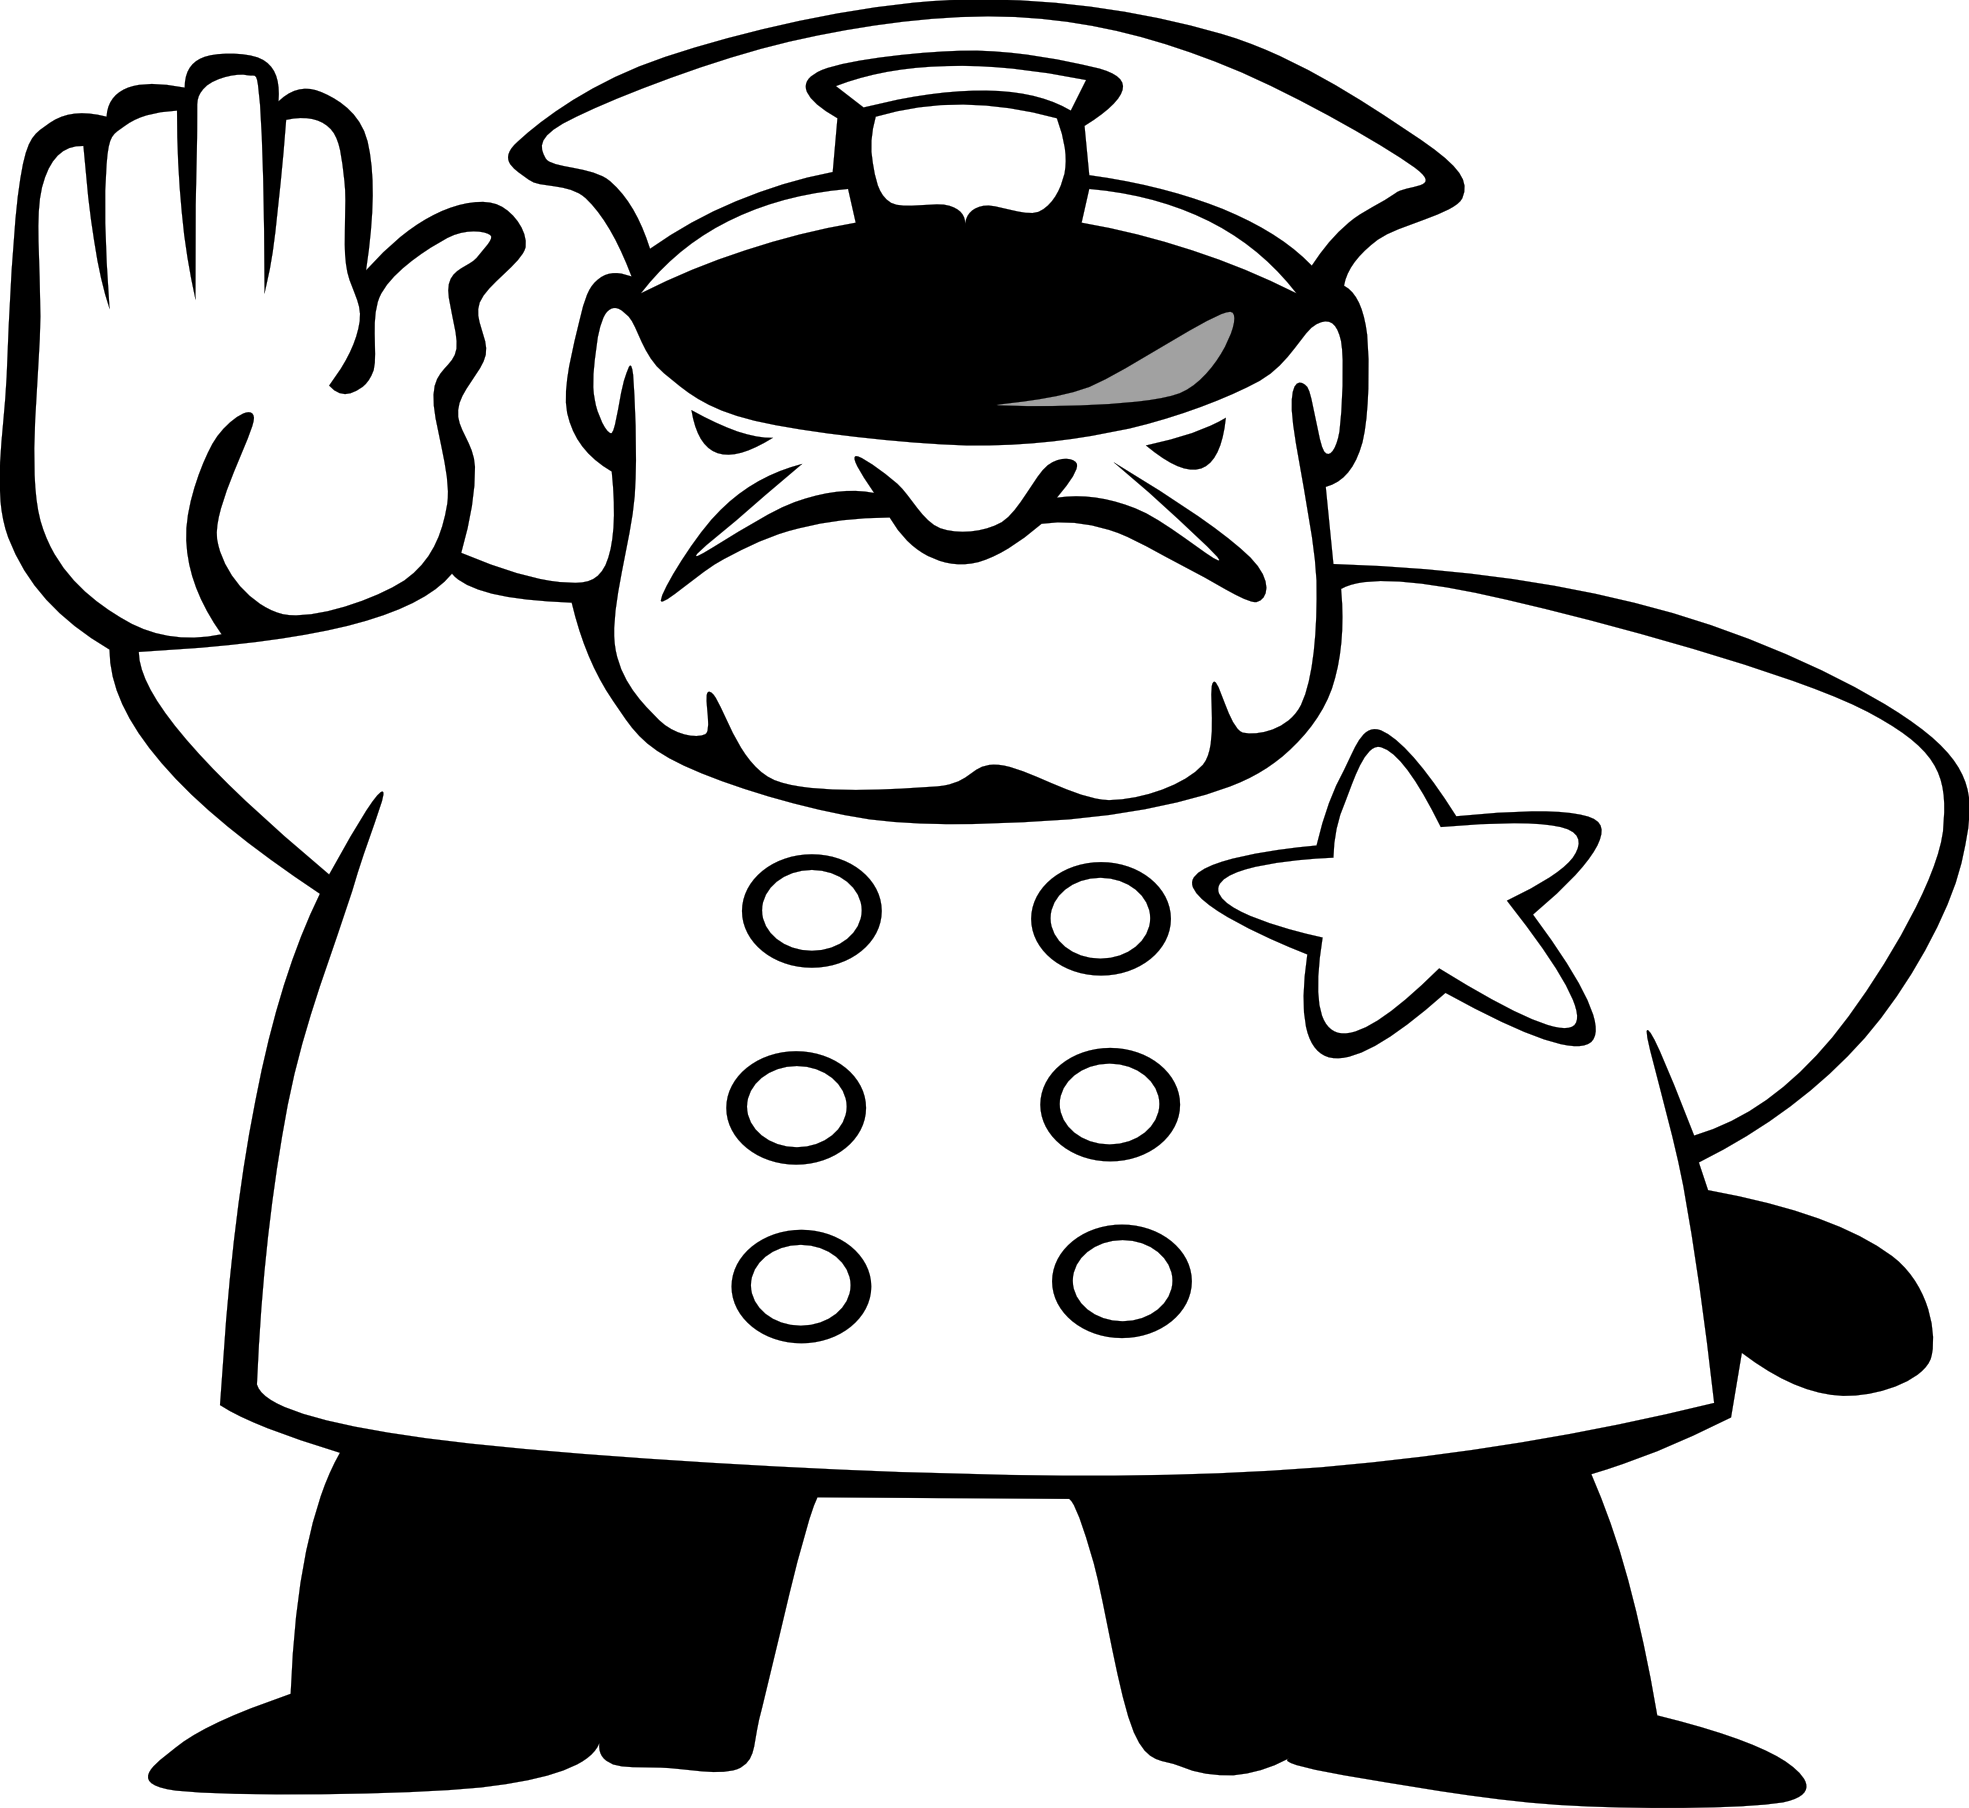 clipart free download Police man panda free. Cop clipart black and white.